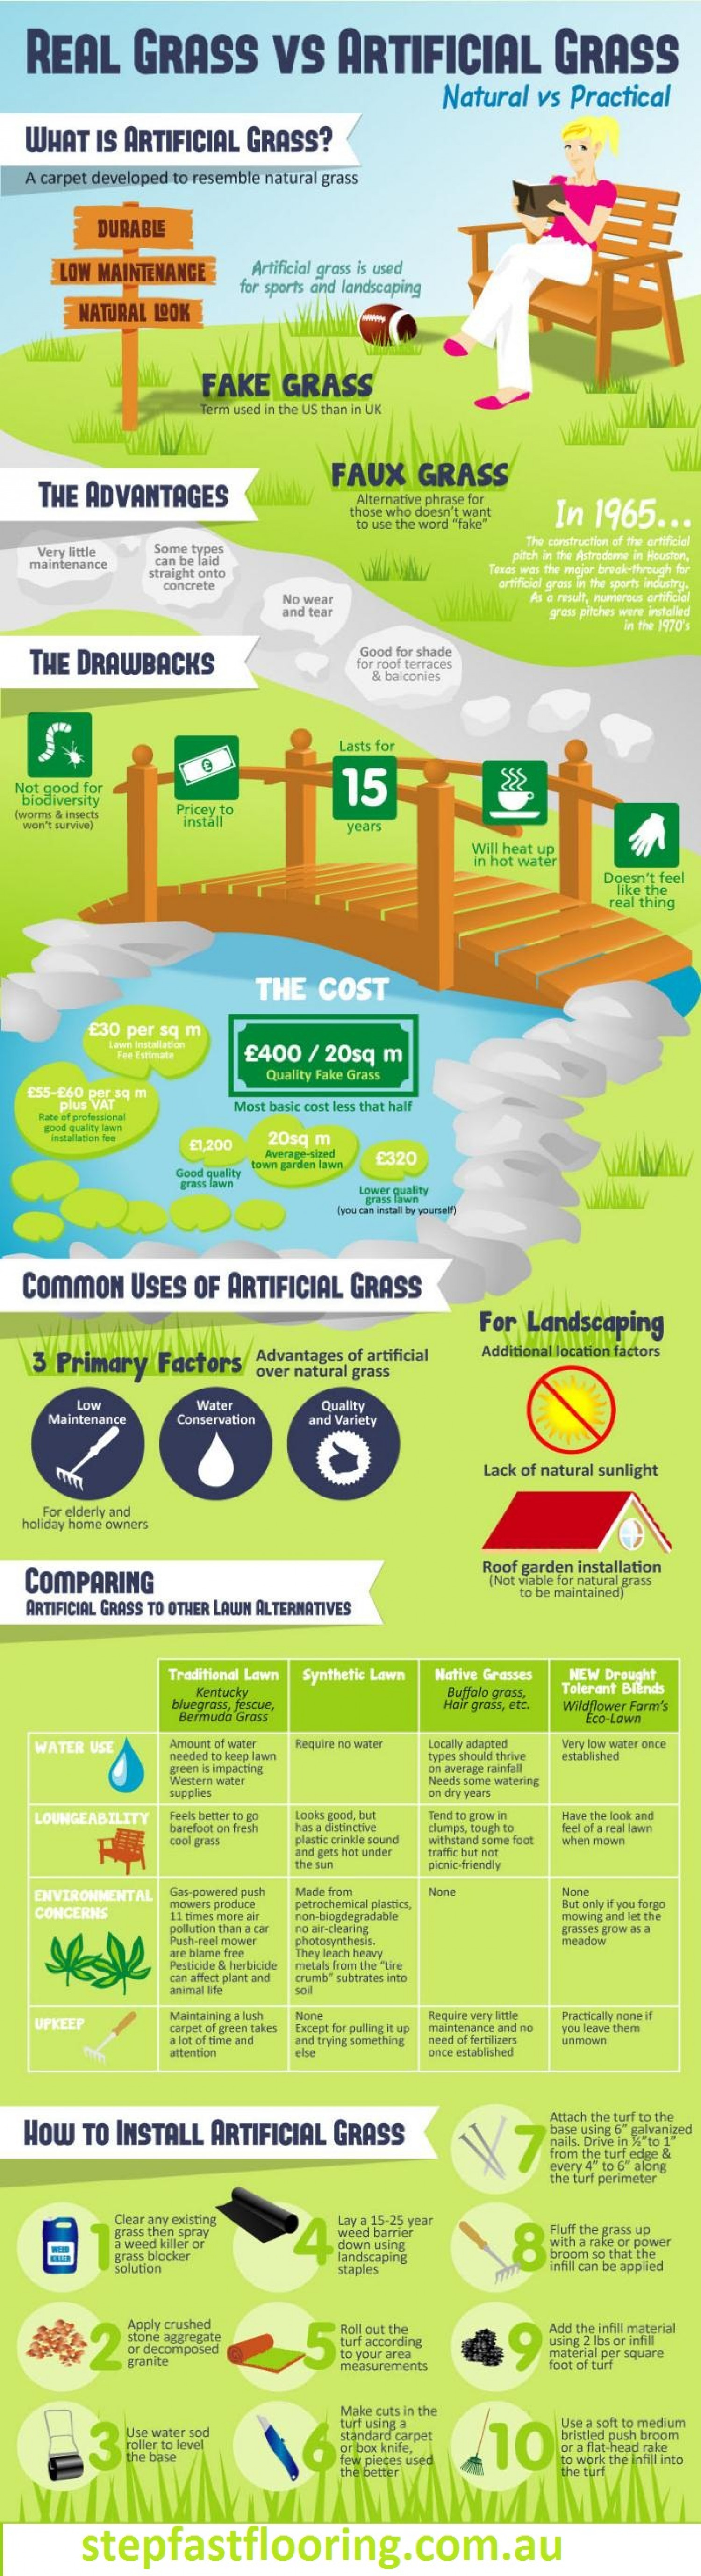 Real Grass Vs. Articial Grass Infographic